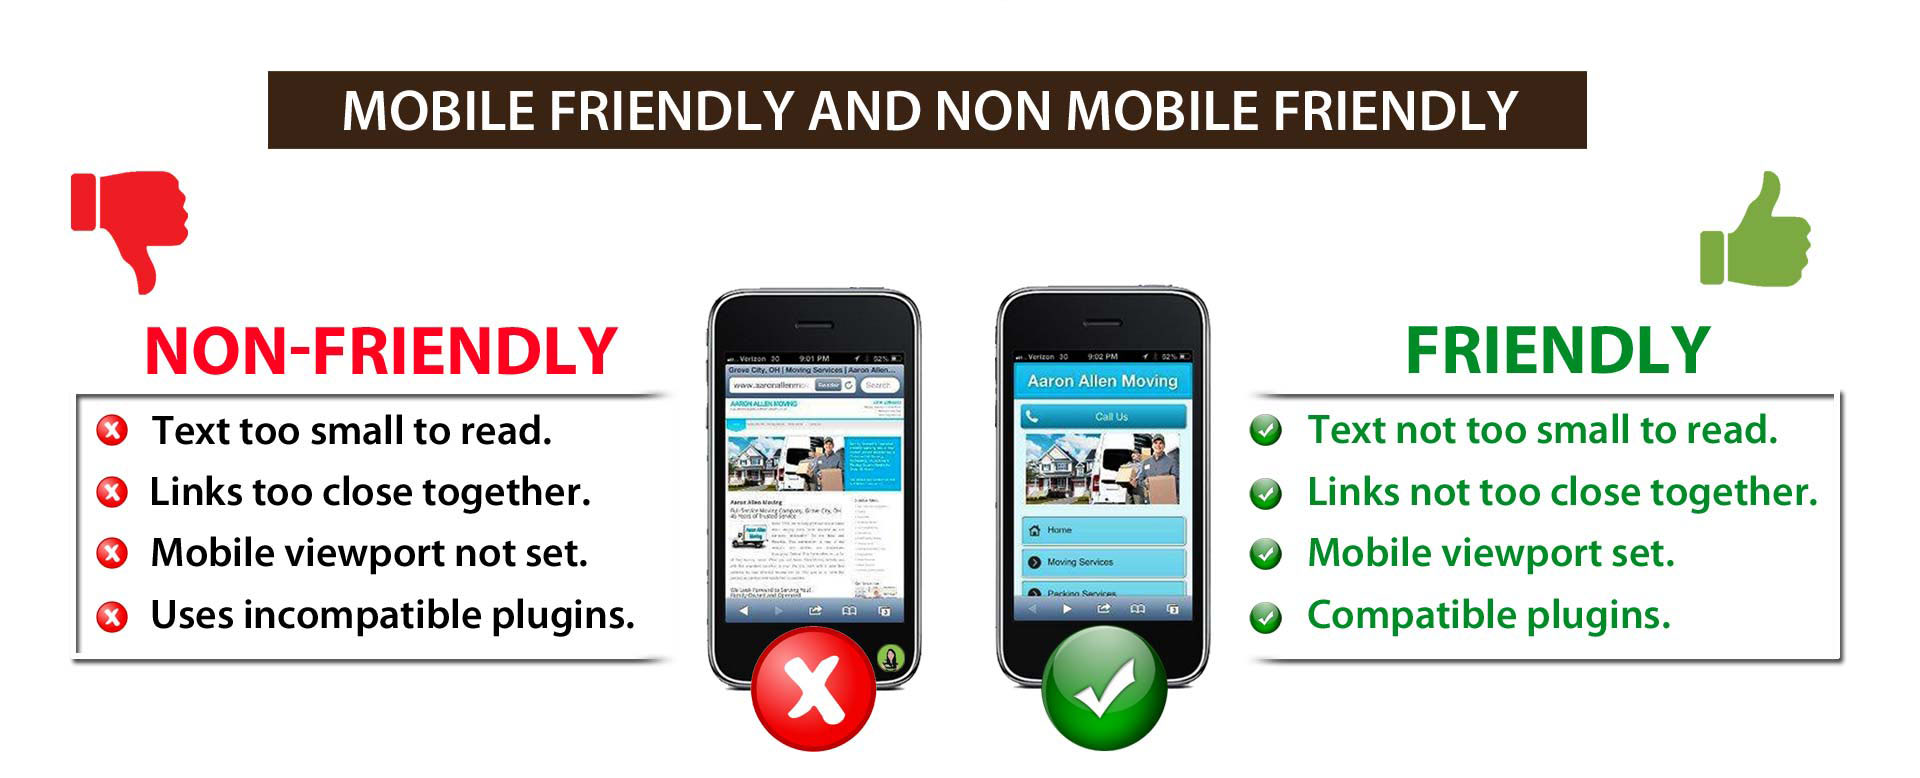 Mobile friendly vs non mobile friendly createnova